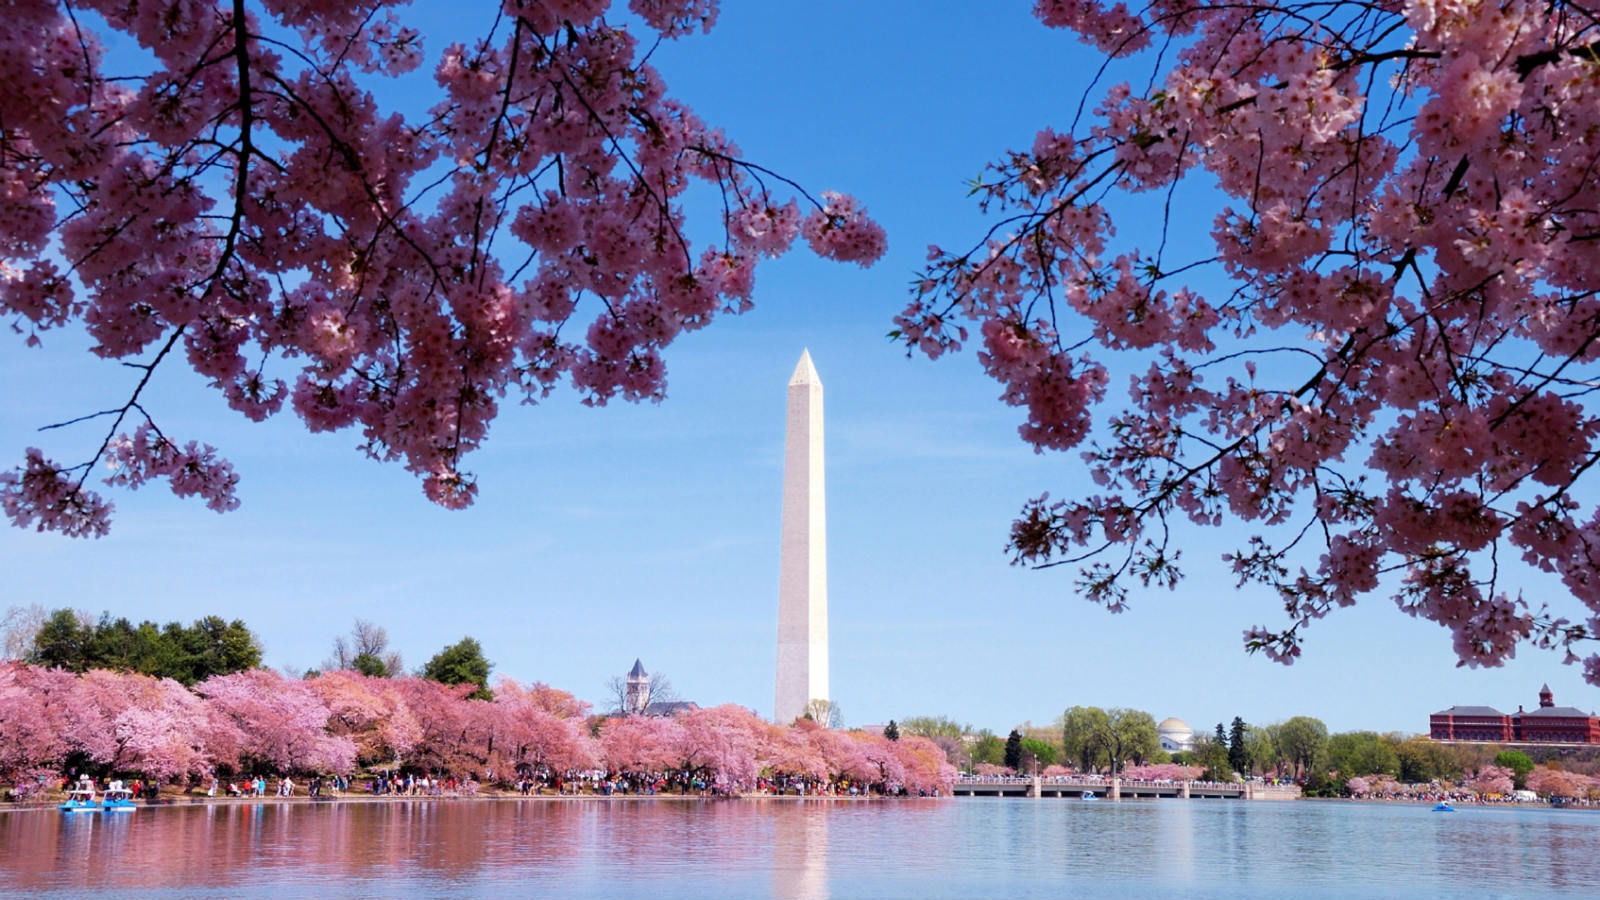 Things to do in Baltimore | Washington Monument